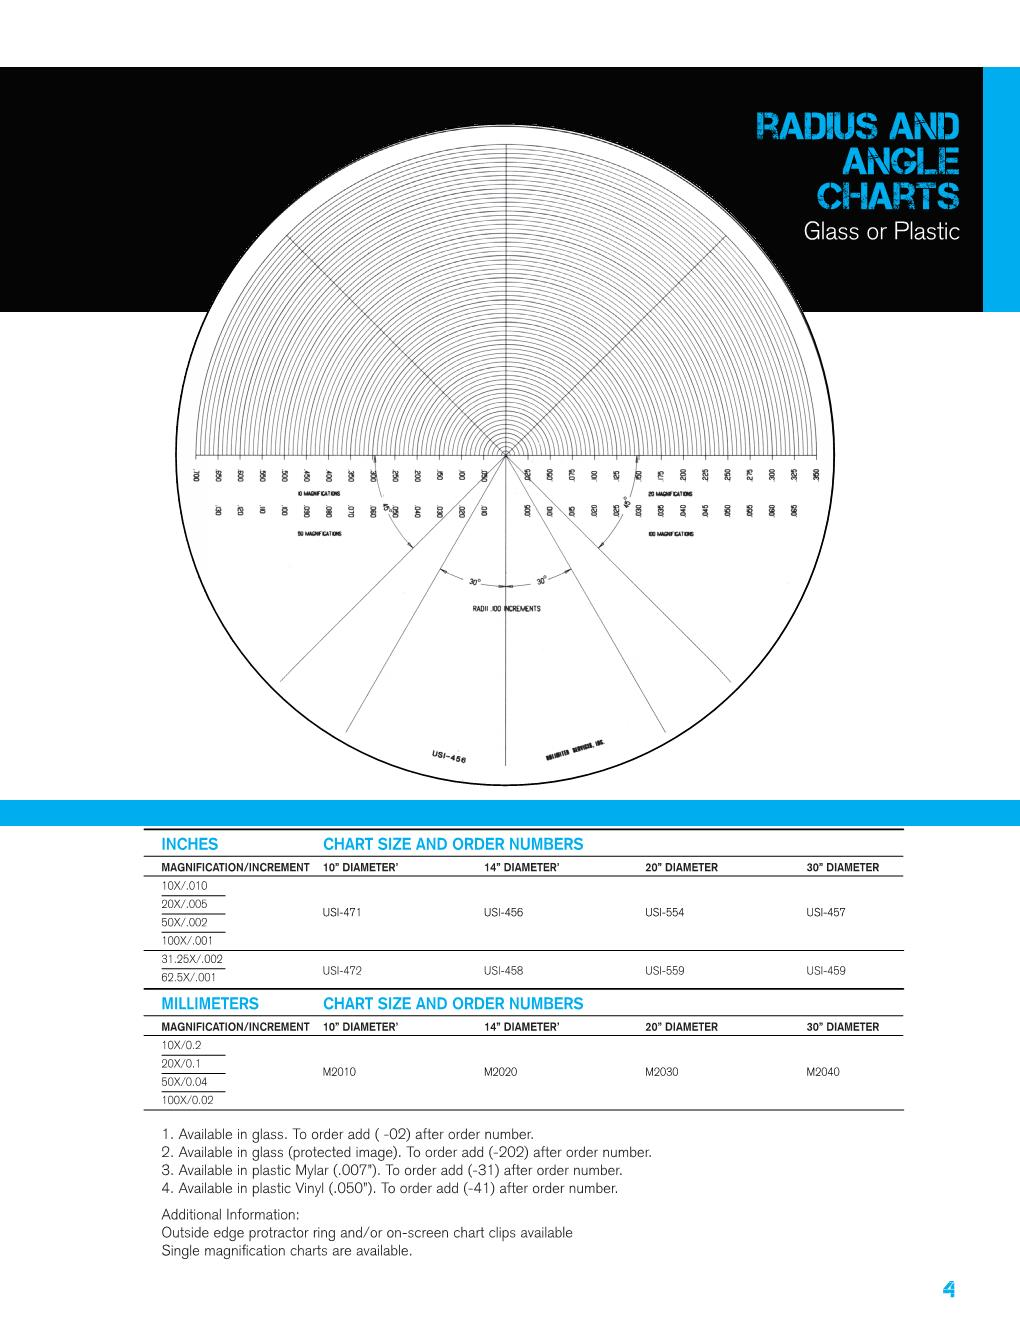 Unlimited Services Chart & Fixture Catalog 12.2018 FINAL Page 005.jpg